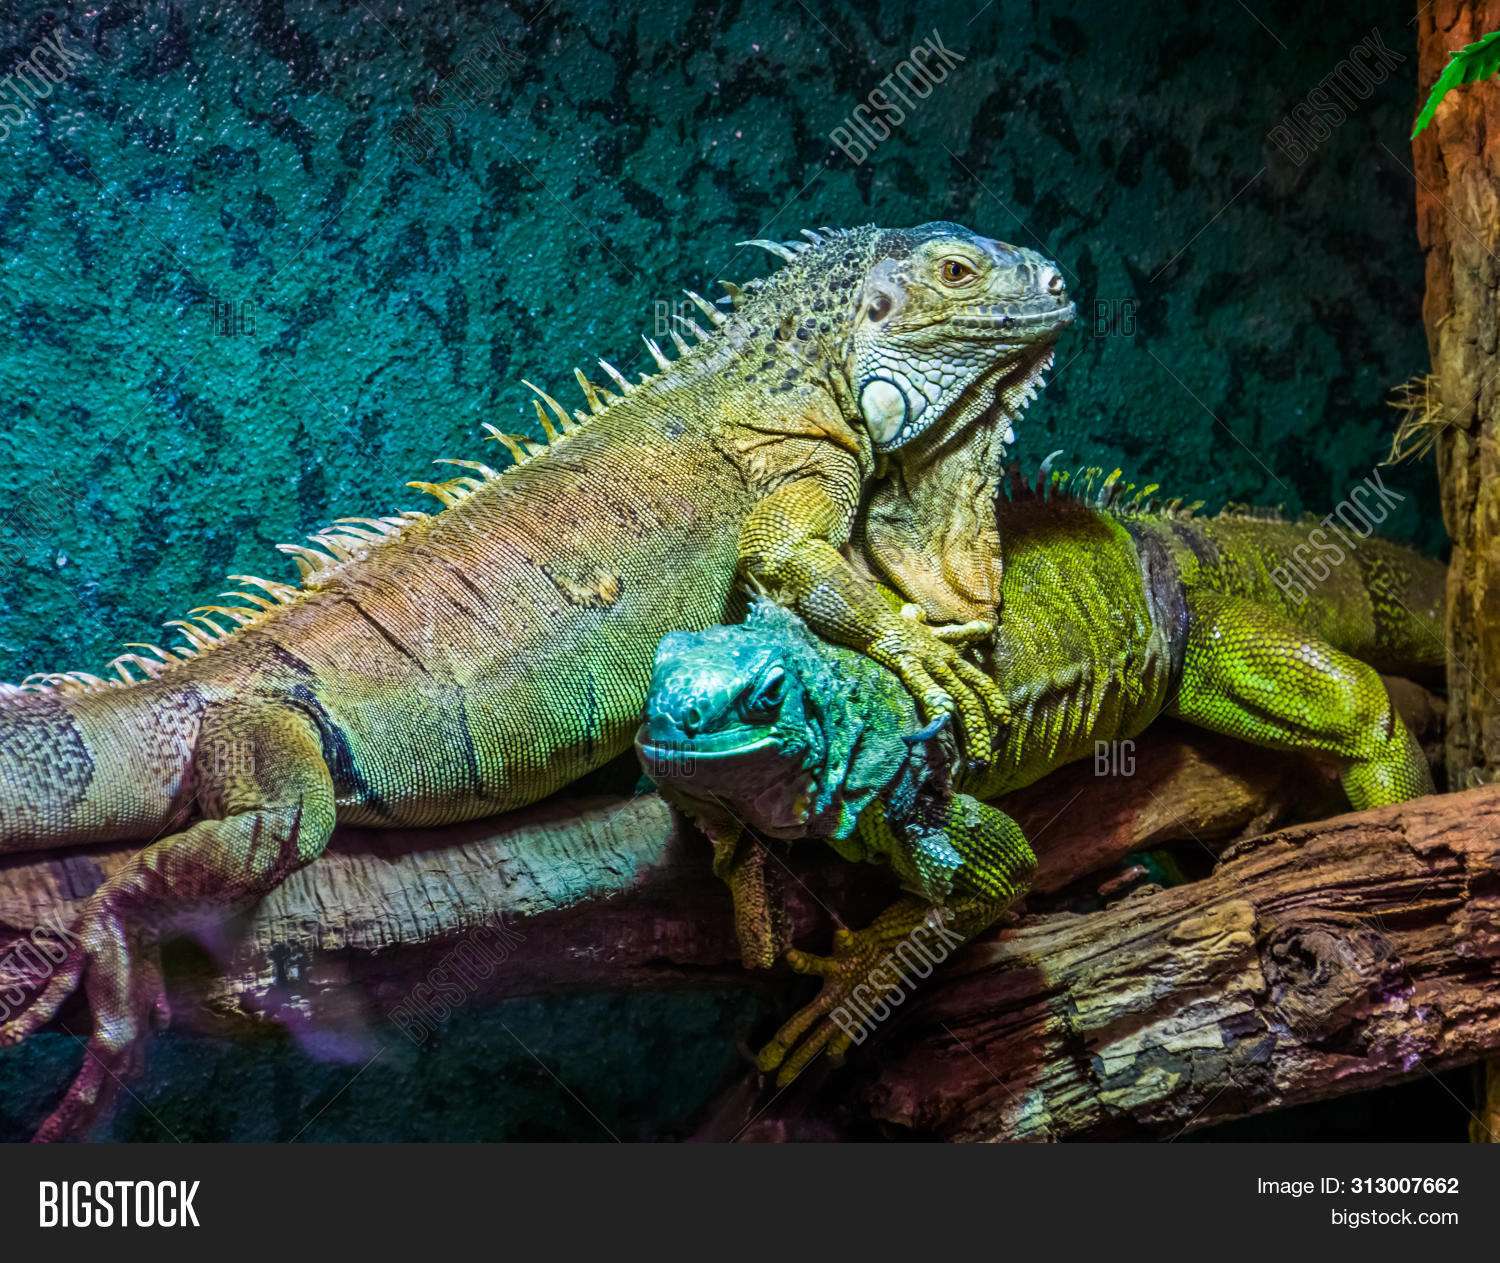 America,Brazil,Iguanidae,adult,american,animal,arboreal,behavior,bright,caribbean,closeup,colored,colorful,dominance,dominant,dominating,exotic,face,female,funny,green,head,herpetoculture,herpetology,iguana,lizard,locomotion,male,mature,pet,popular,portrait,reptile,reptilian,specie,species,tropical,vibrant,vivid,zoo,zoology